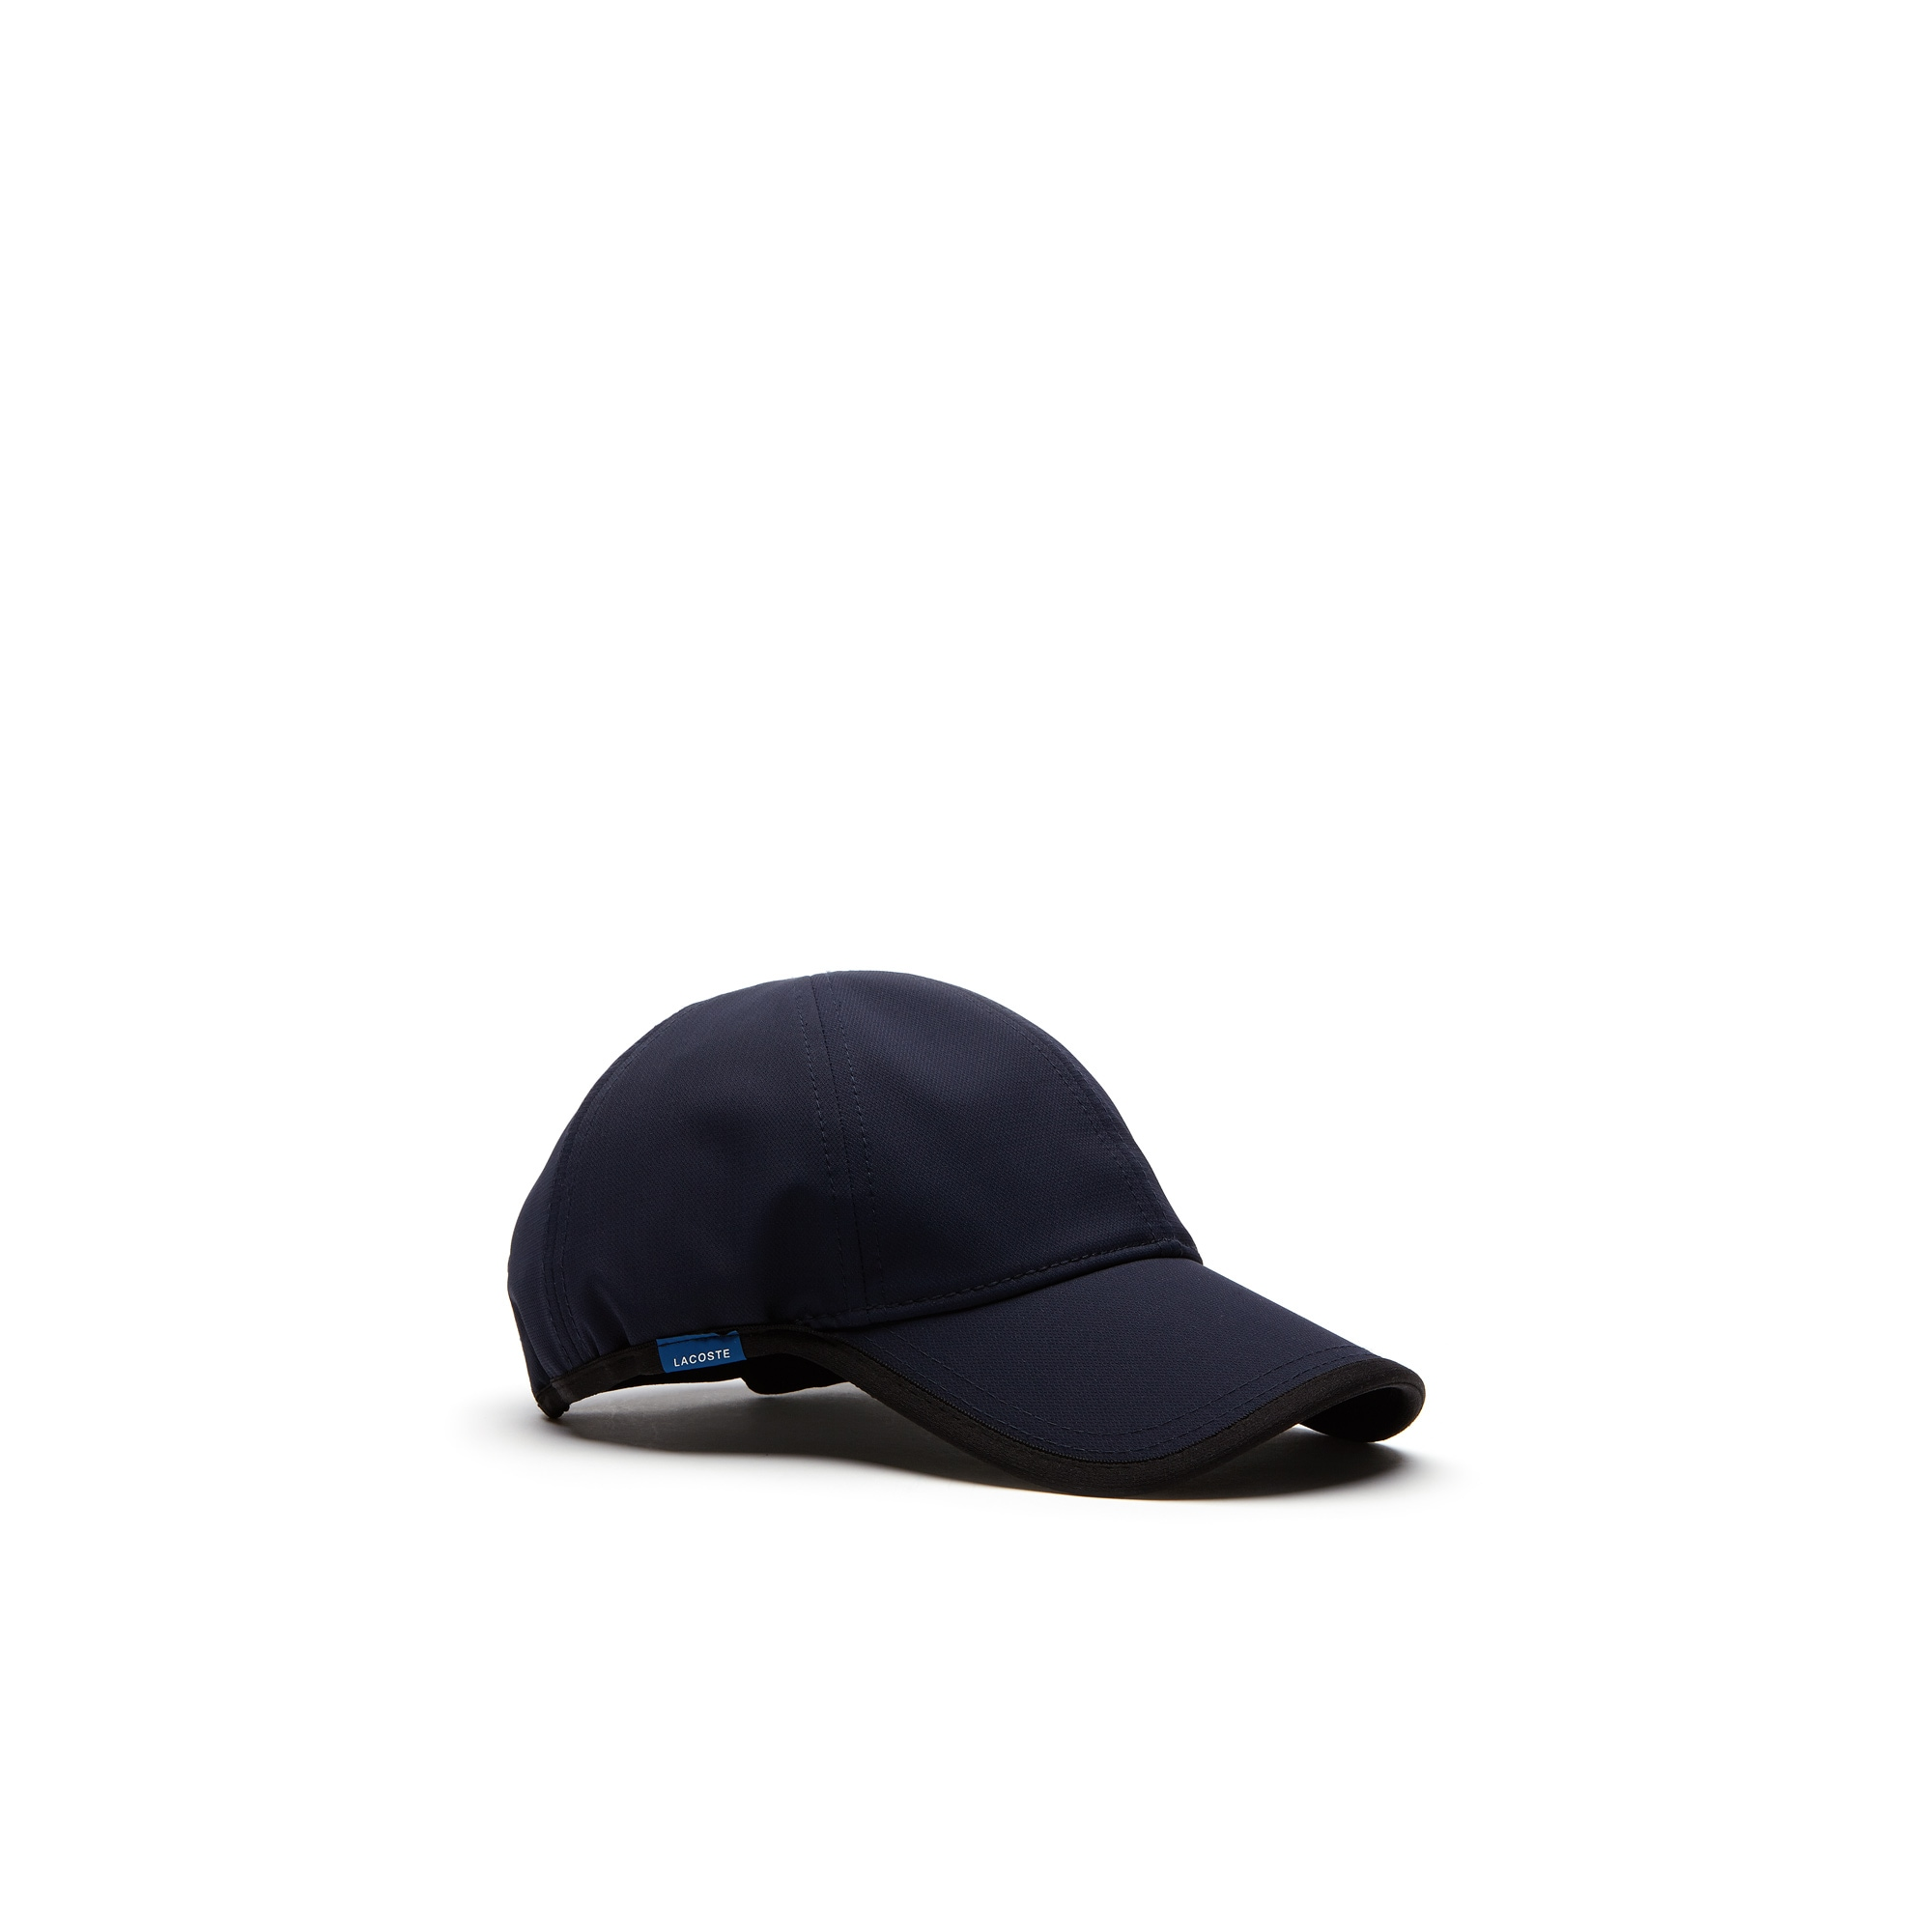 Men's Texturized Cap